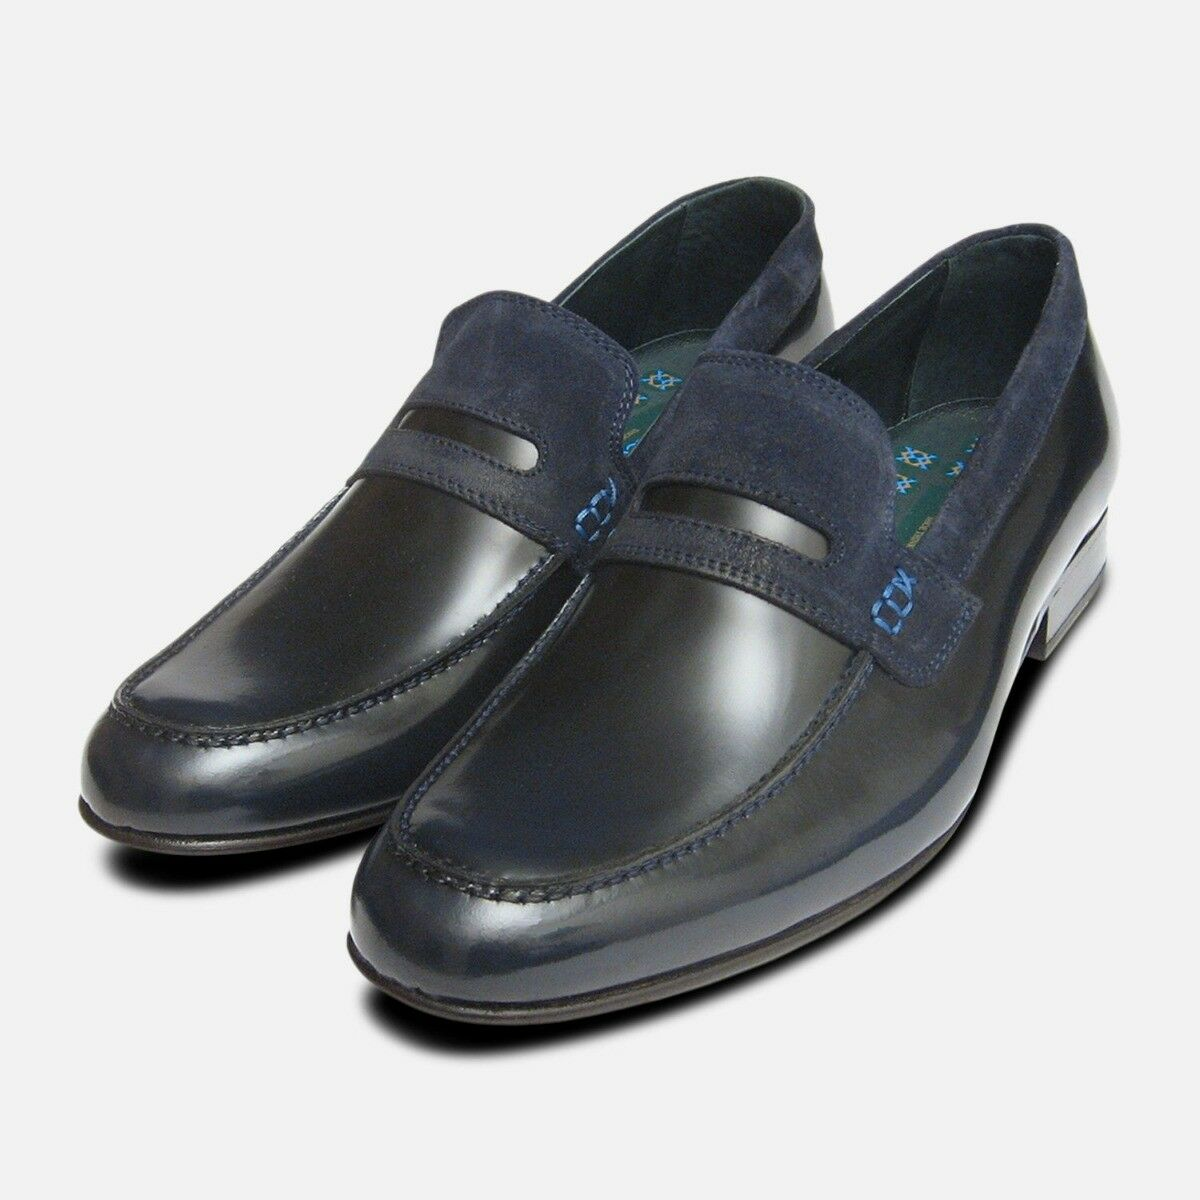 Vanquish Designer Loafers in Antique Navy Blue by Exceed Shoes